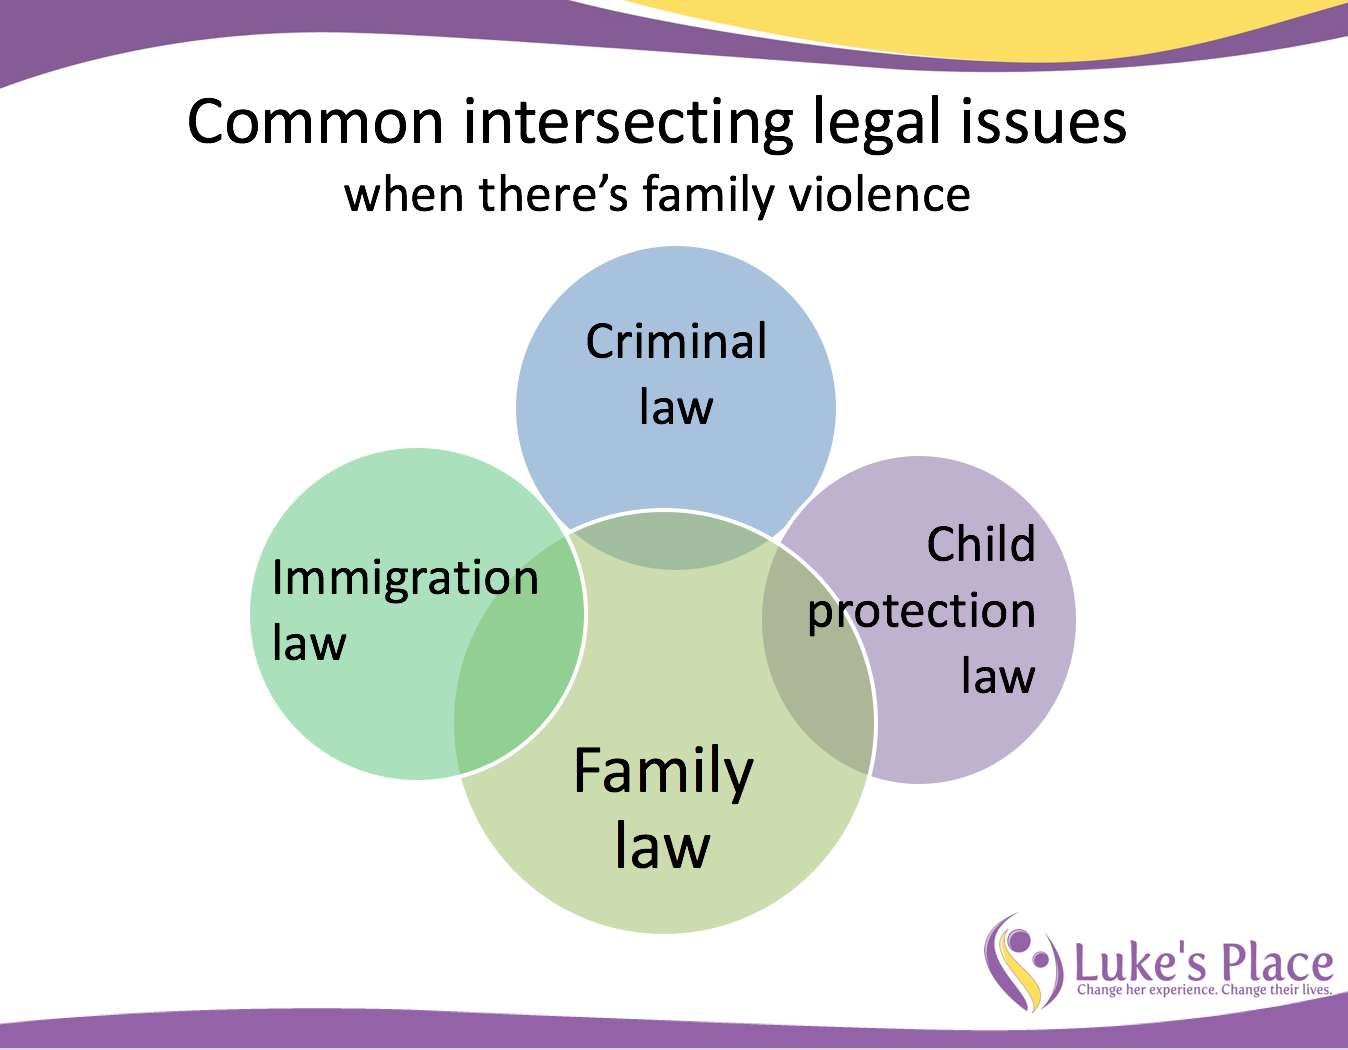 Family law, criminal law and immigration issues: Webinar on intersecting legal issues